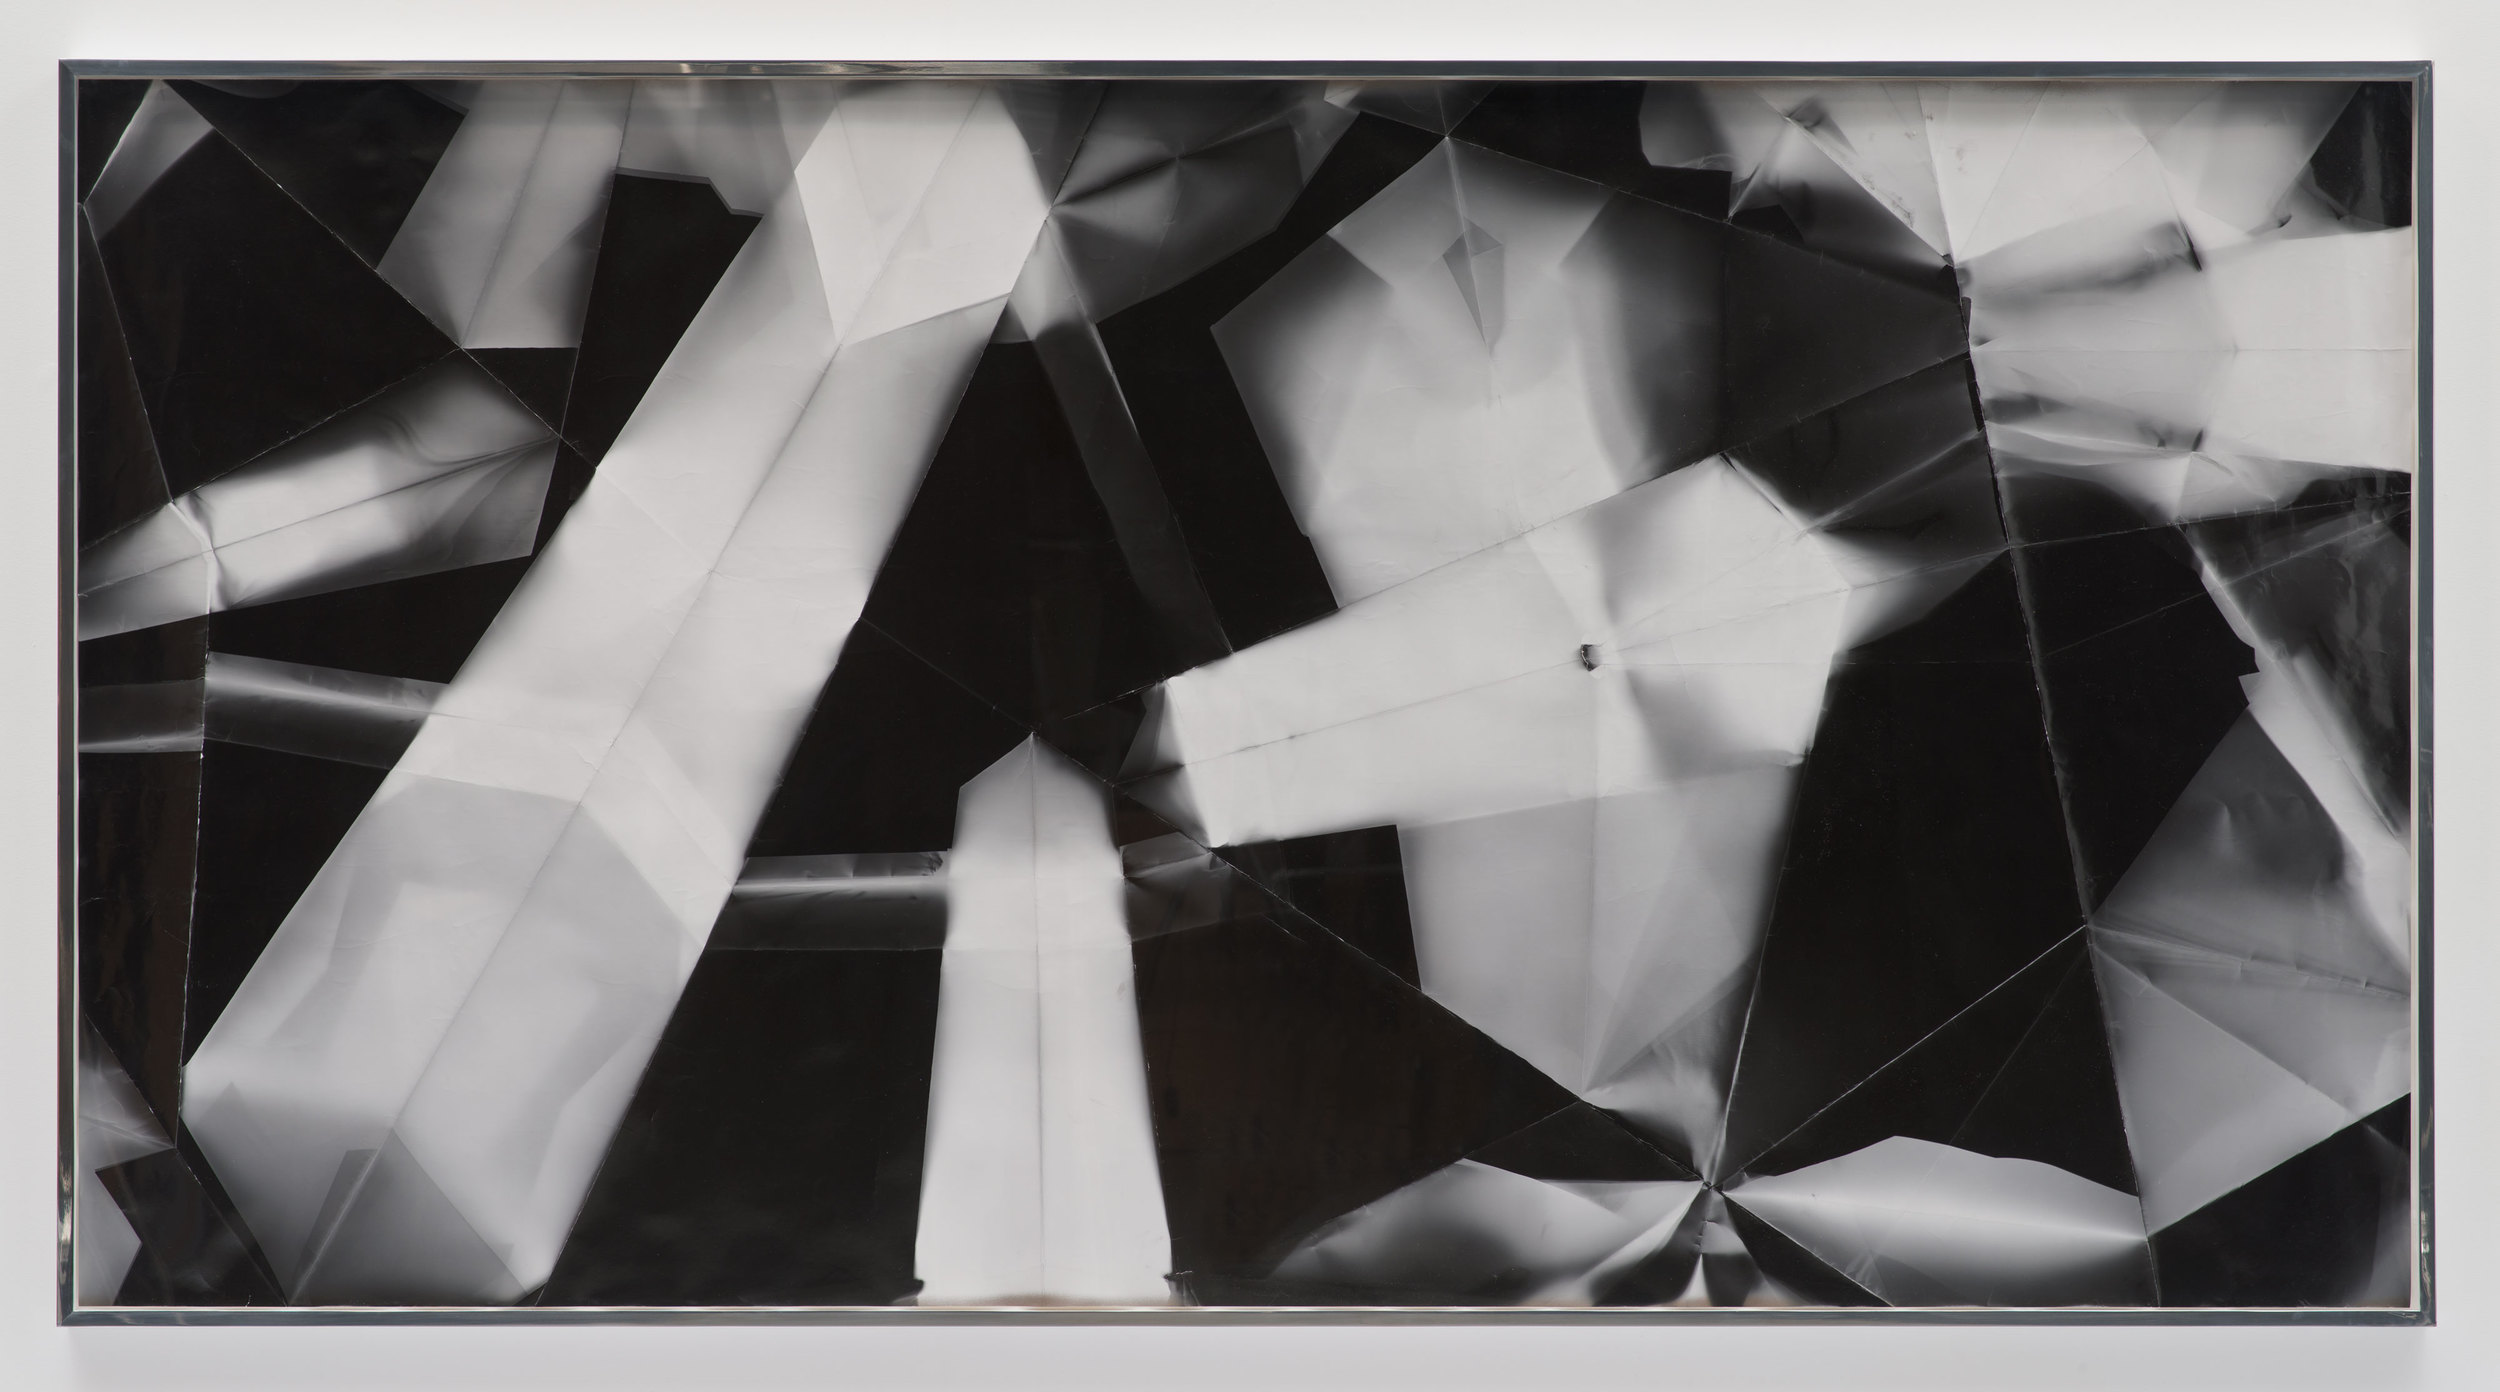 Fold (45º/135º/225º/315º directional light sources), December 31, 2012, Los Angeles, California, Ilford Multigrade IV MGF.1K    2012   Black and white fiber based photographic paper  55 x 108 inches